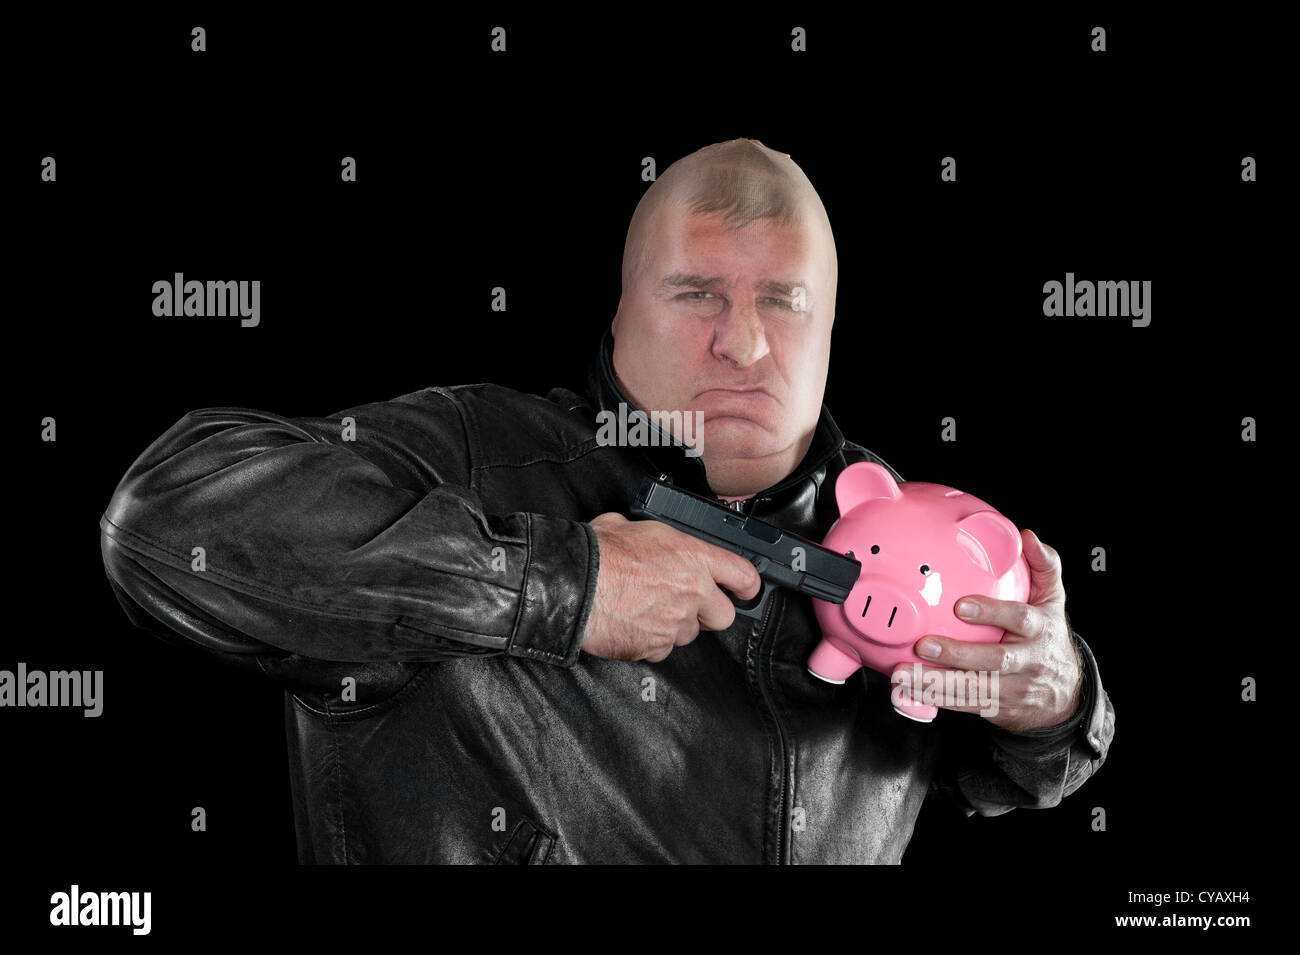 A masked thief threatening to shoot a piggy bank as he steals it during a bad economy. - Stock Image